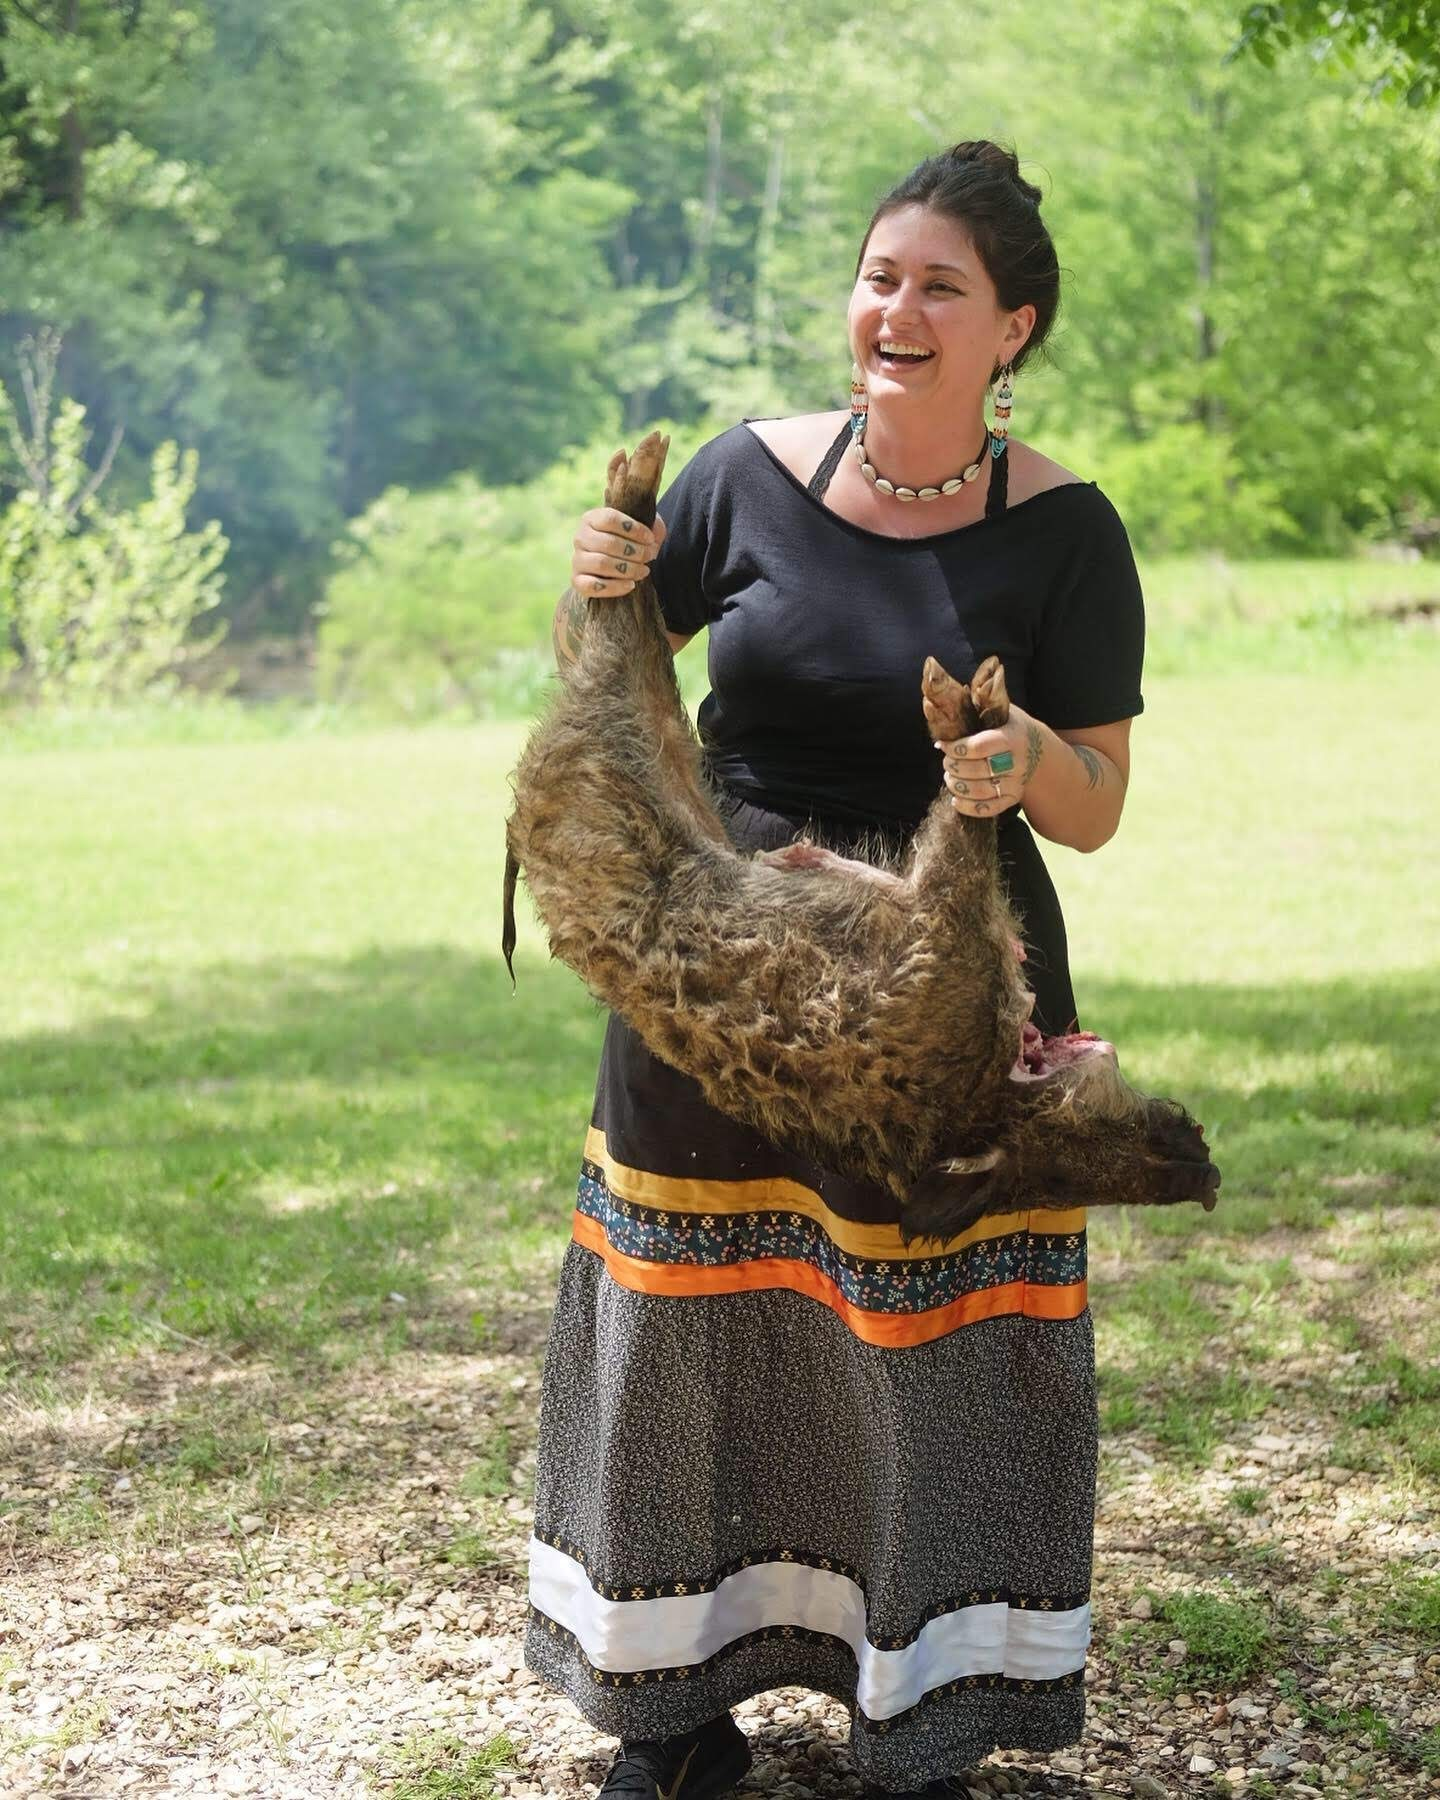 Another photo from the Hairy Bikers shoot, this was the wild hog we roasted, which Amanda's husband John got for me!